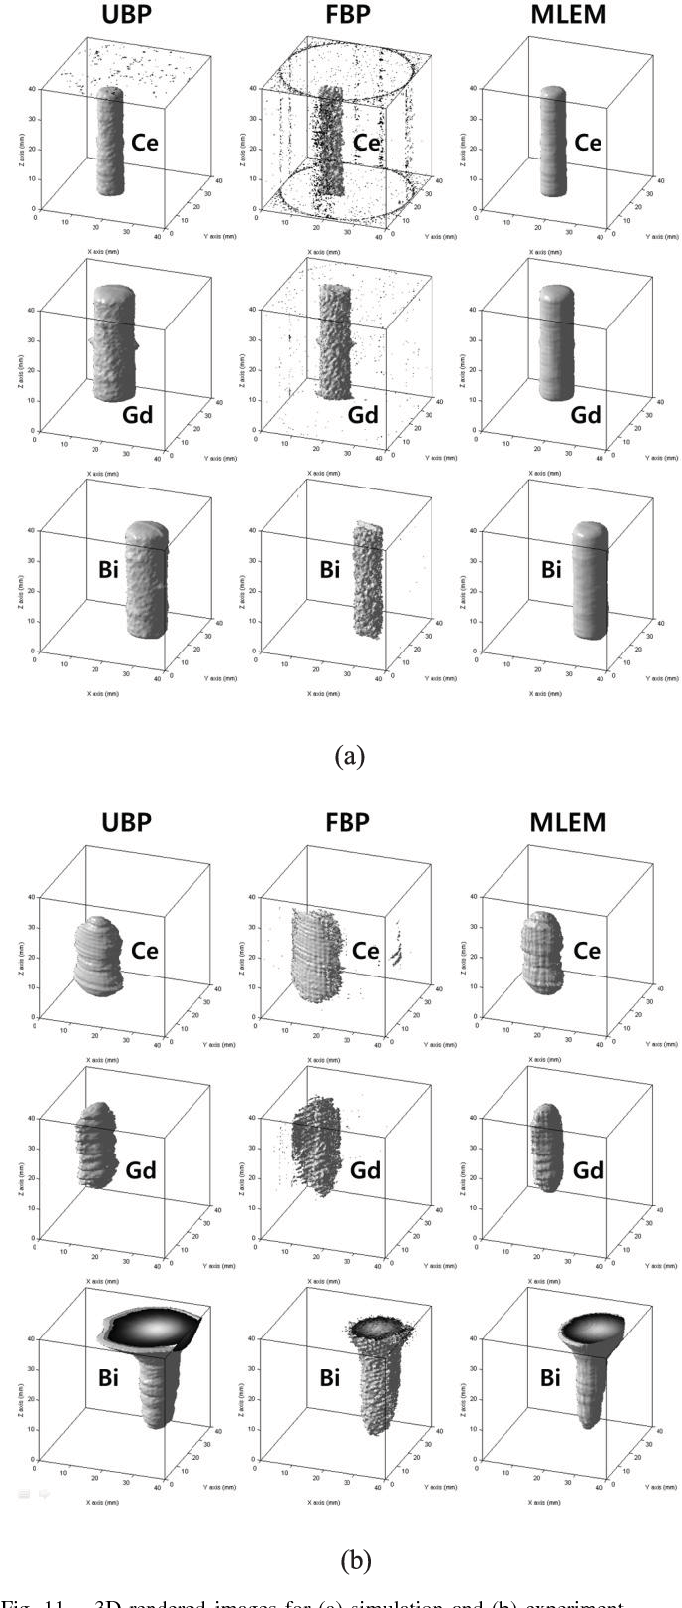 Fig. 11. 3D rendered images for (a) simulation and (b) experiment.